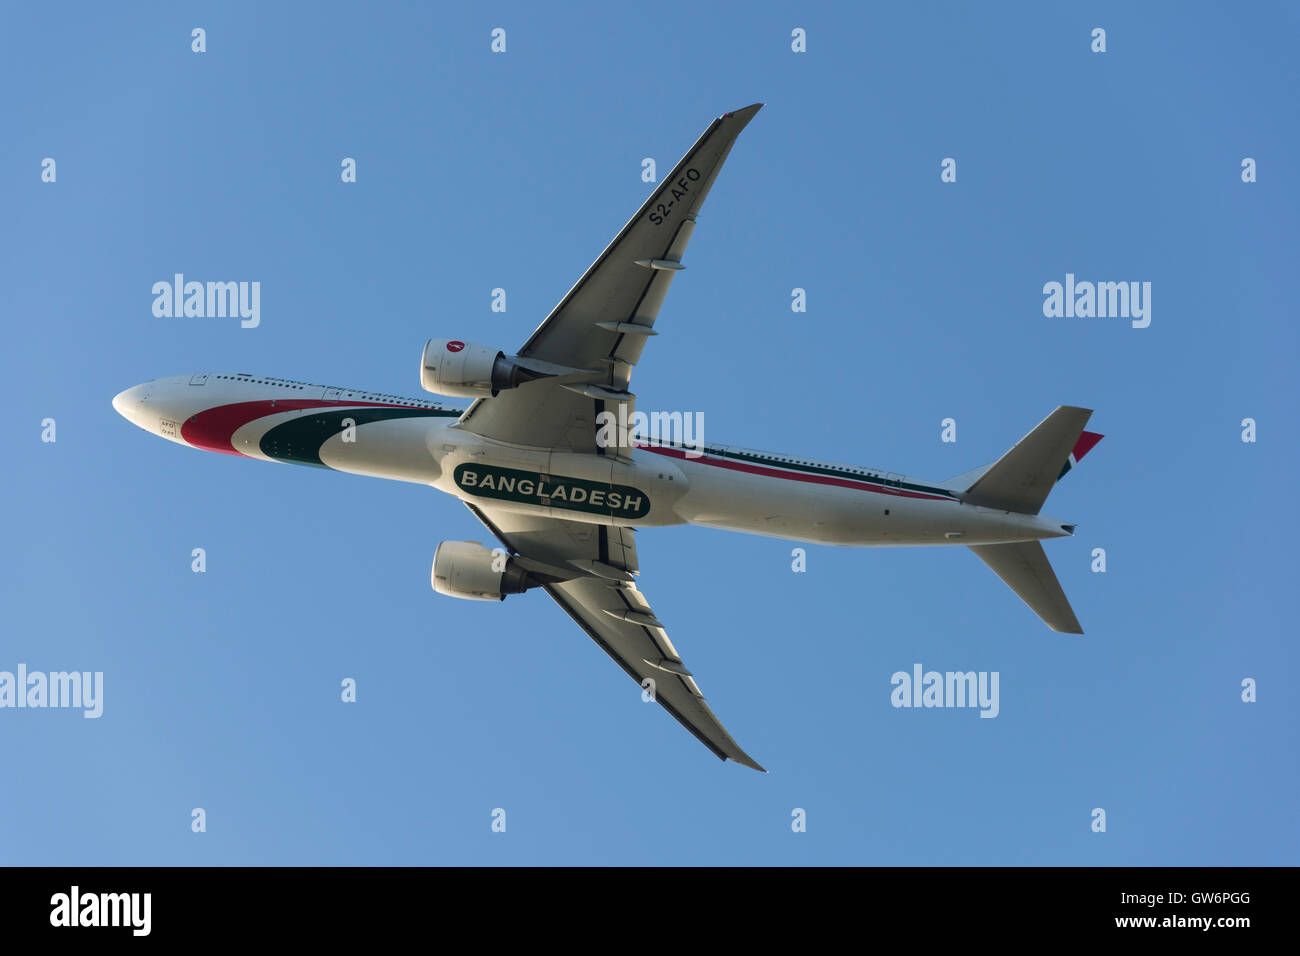 Biman Bangladesh Airlines Boeing 777-3E9(ER) taking off from Heathrow Airport, Greater London, England, United Kingdom - Stock Image